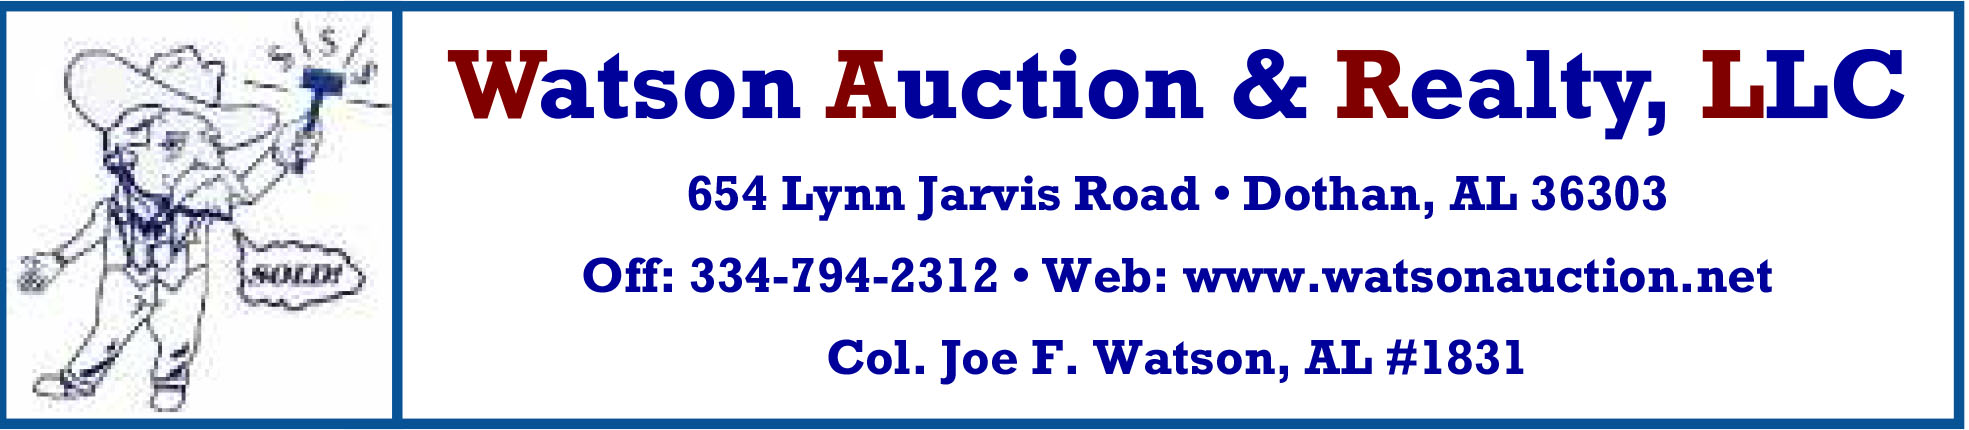 Watson Auction & Realty, LLC